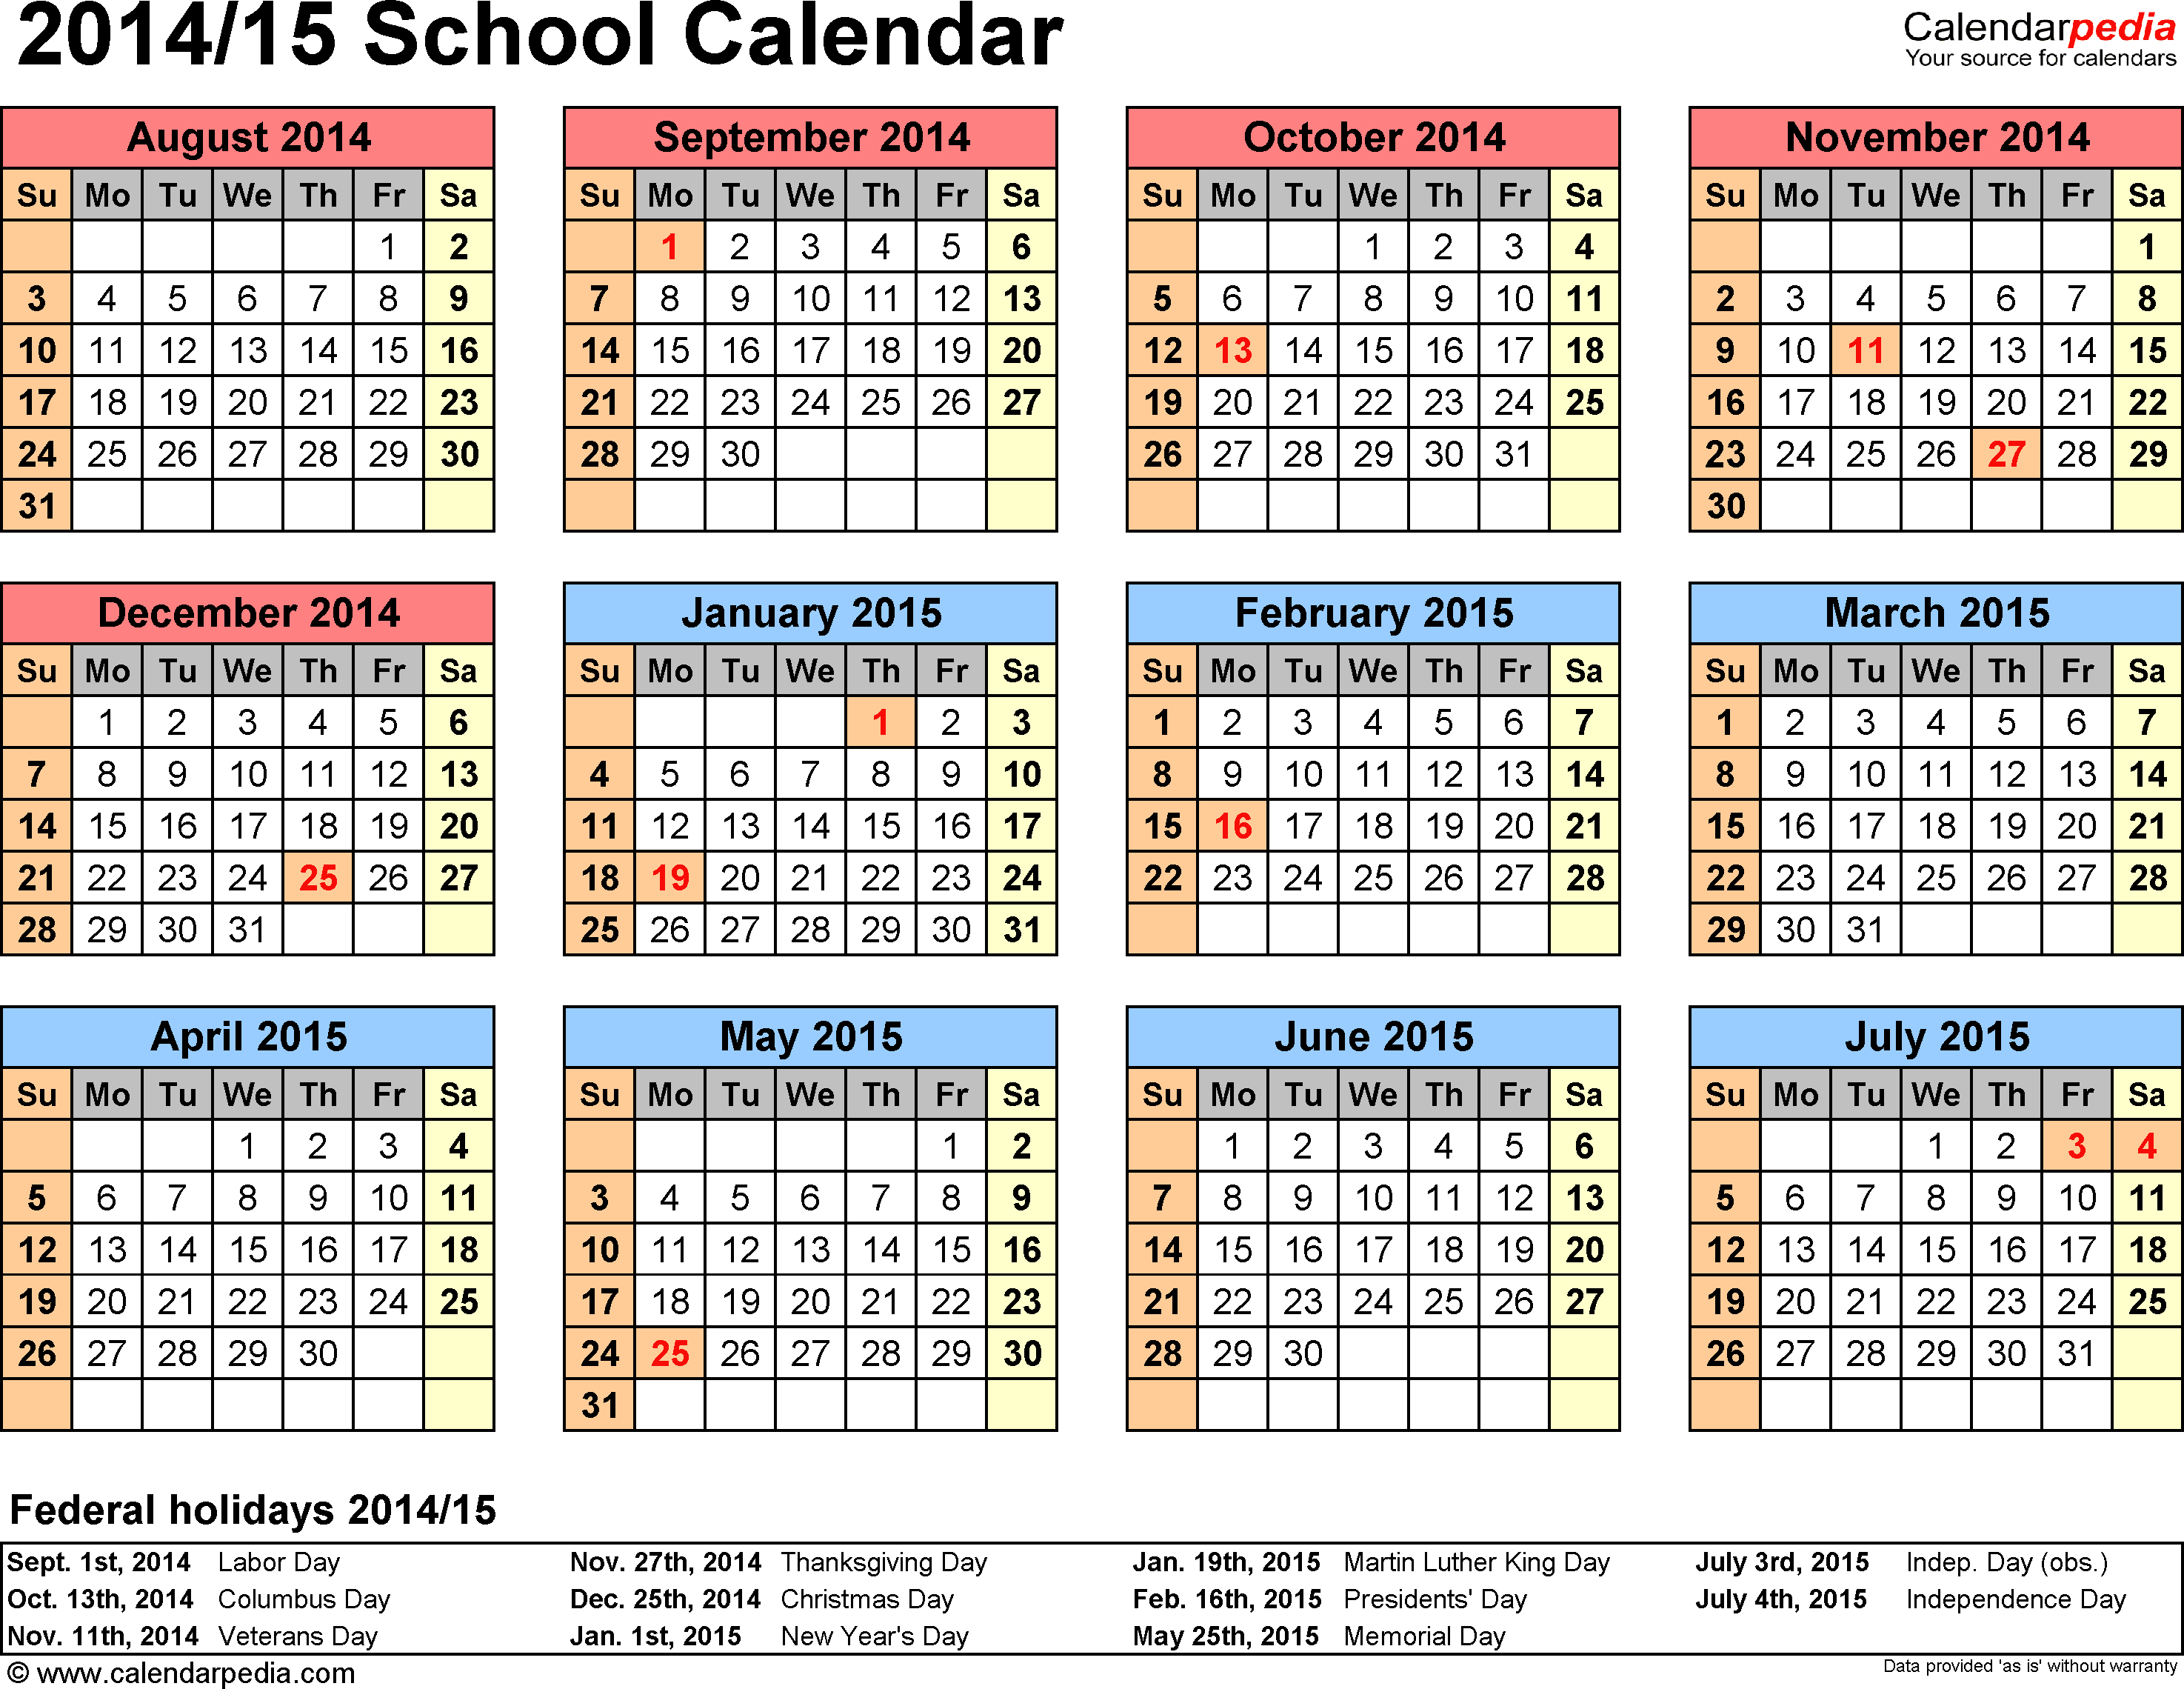 2014 And 2019 School Calendar Printable School calendars 2014/2015 as free printable Word templates